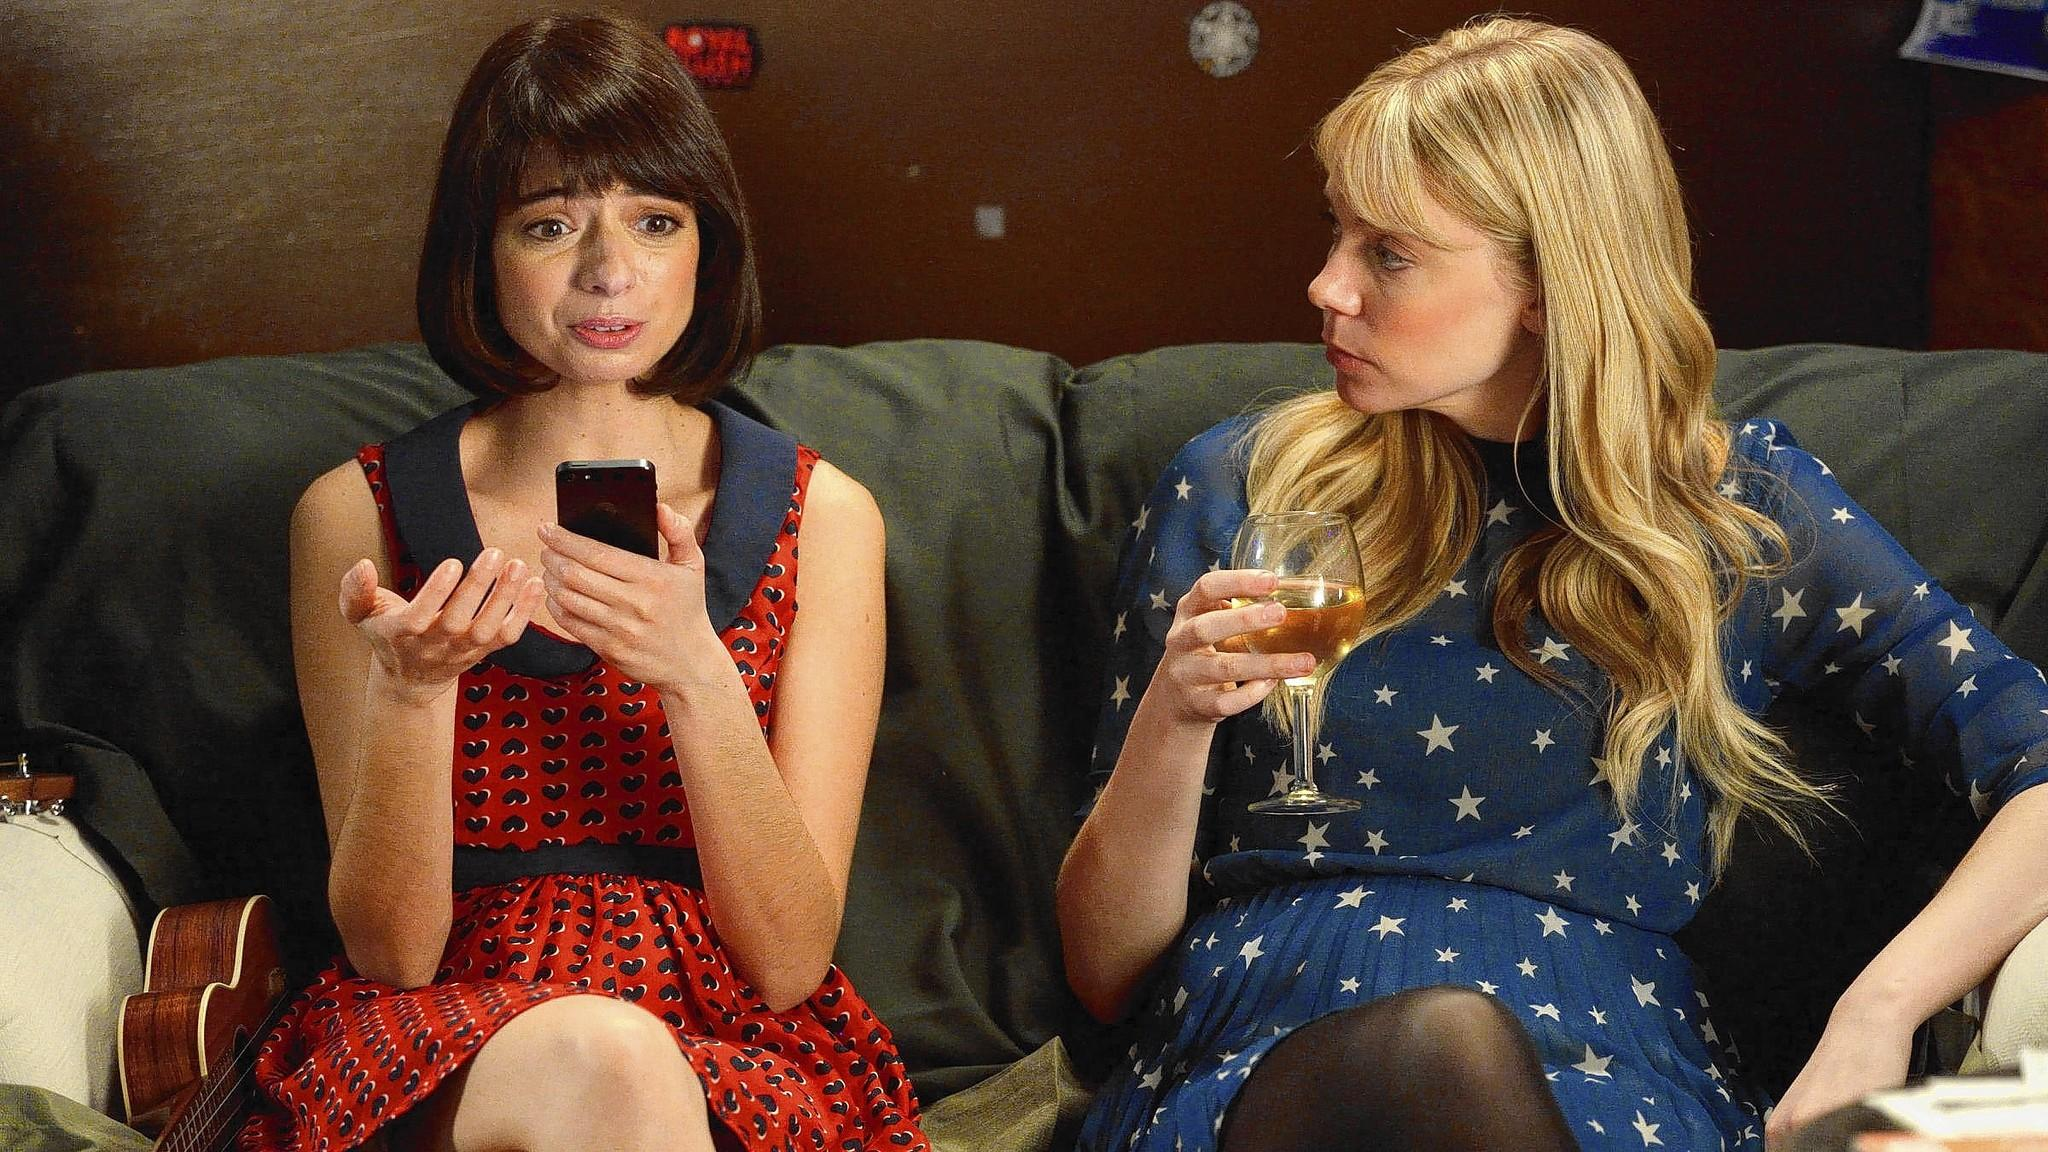 Nazareth native Kate Micucci (left) and her musical duo partner Riki Lindhome star in the new IFC series 'Garfunkel and Oates,' based on their touring comedy act.